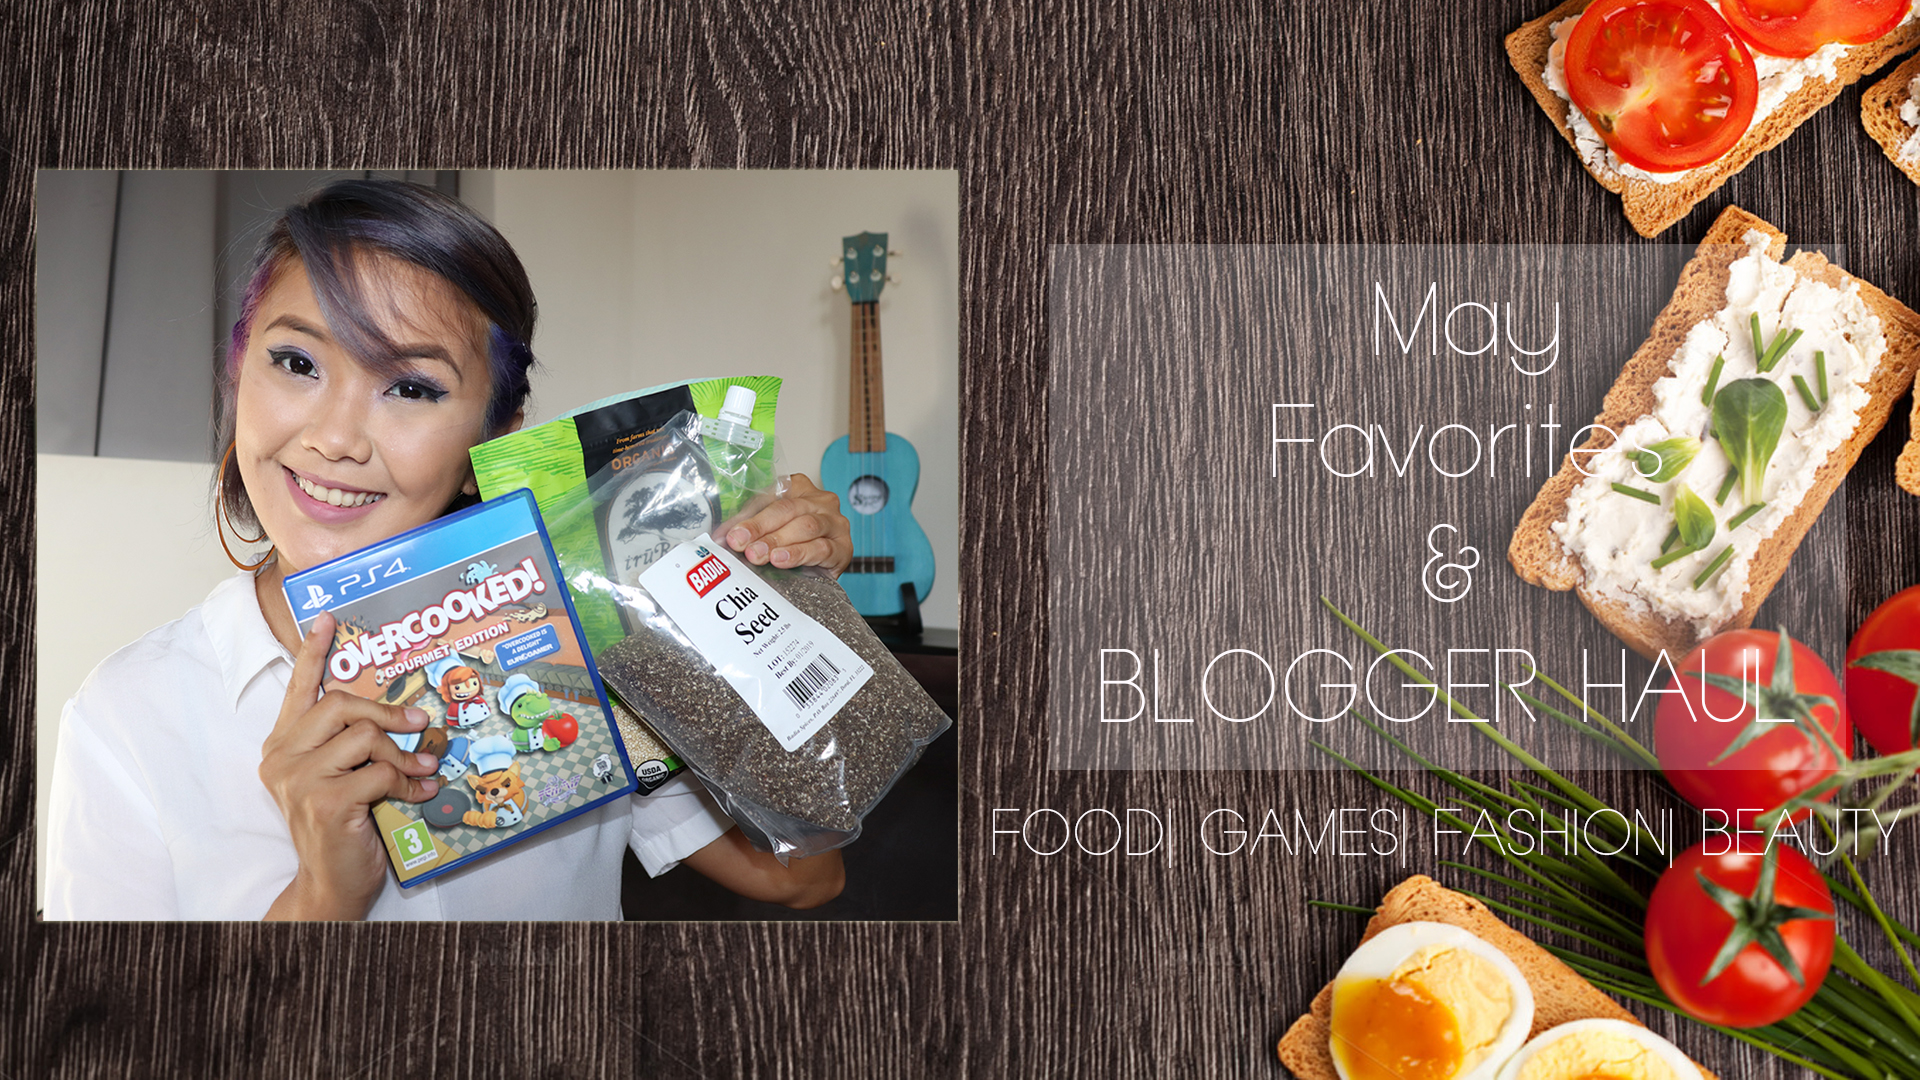 [VLOG] May Favorites & Blogger/ Vlogger Haul- Food, Health, Gaming, Beauty & Fashion